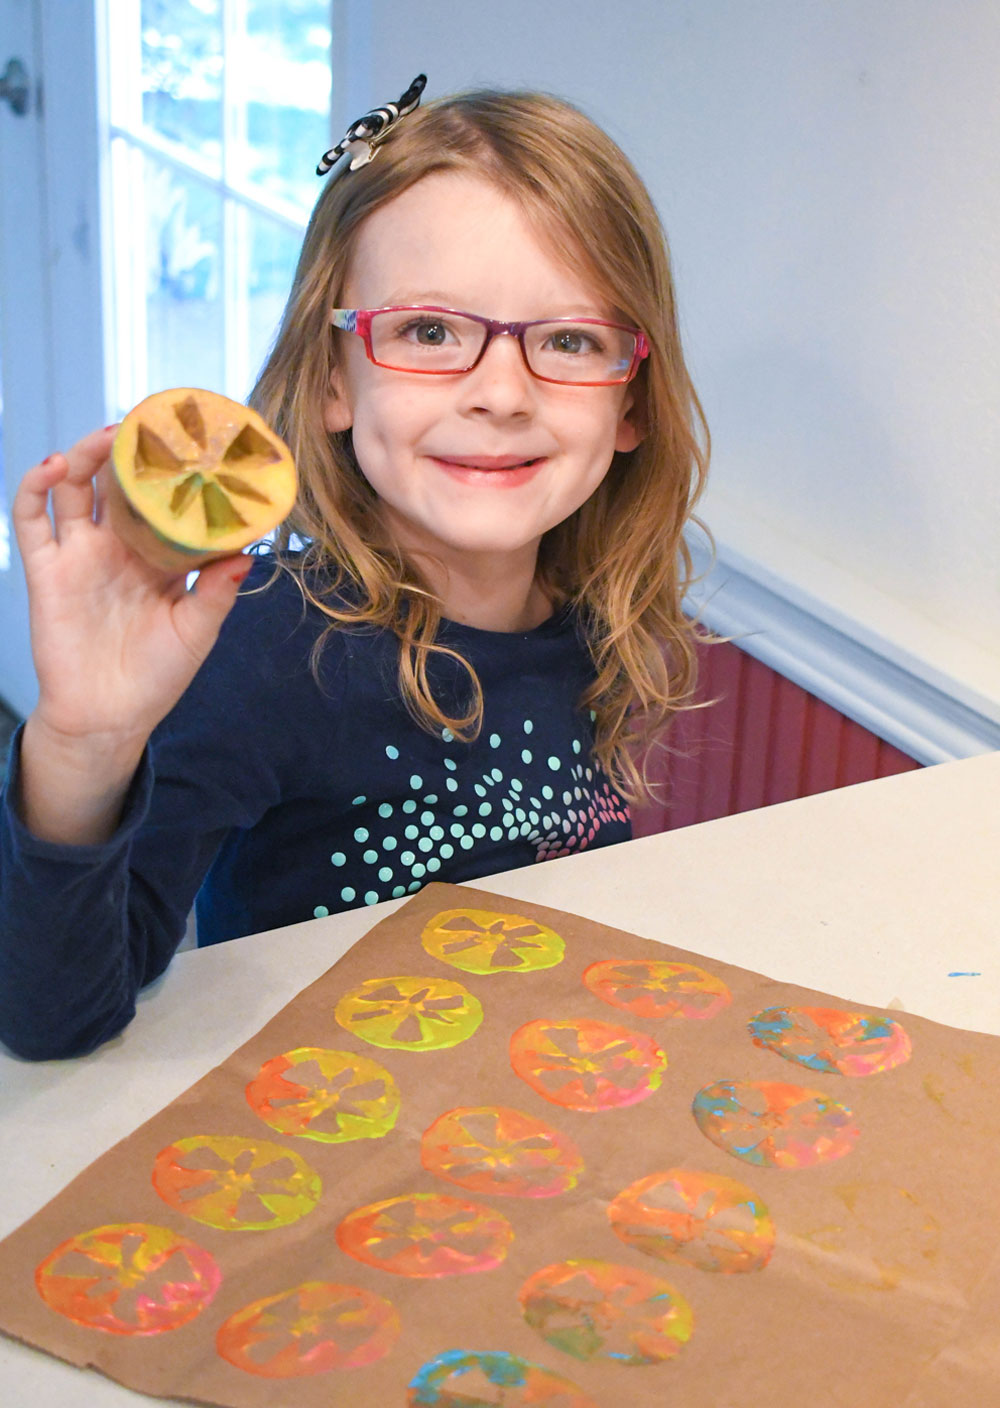 Make your own designs with colorful potato stamps!